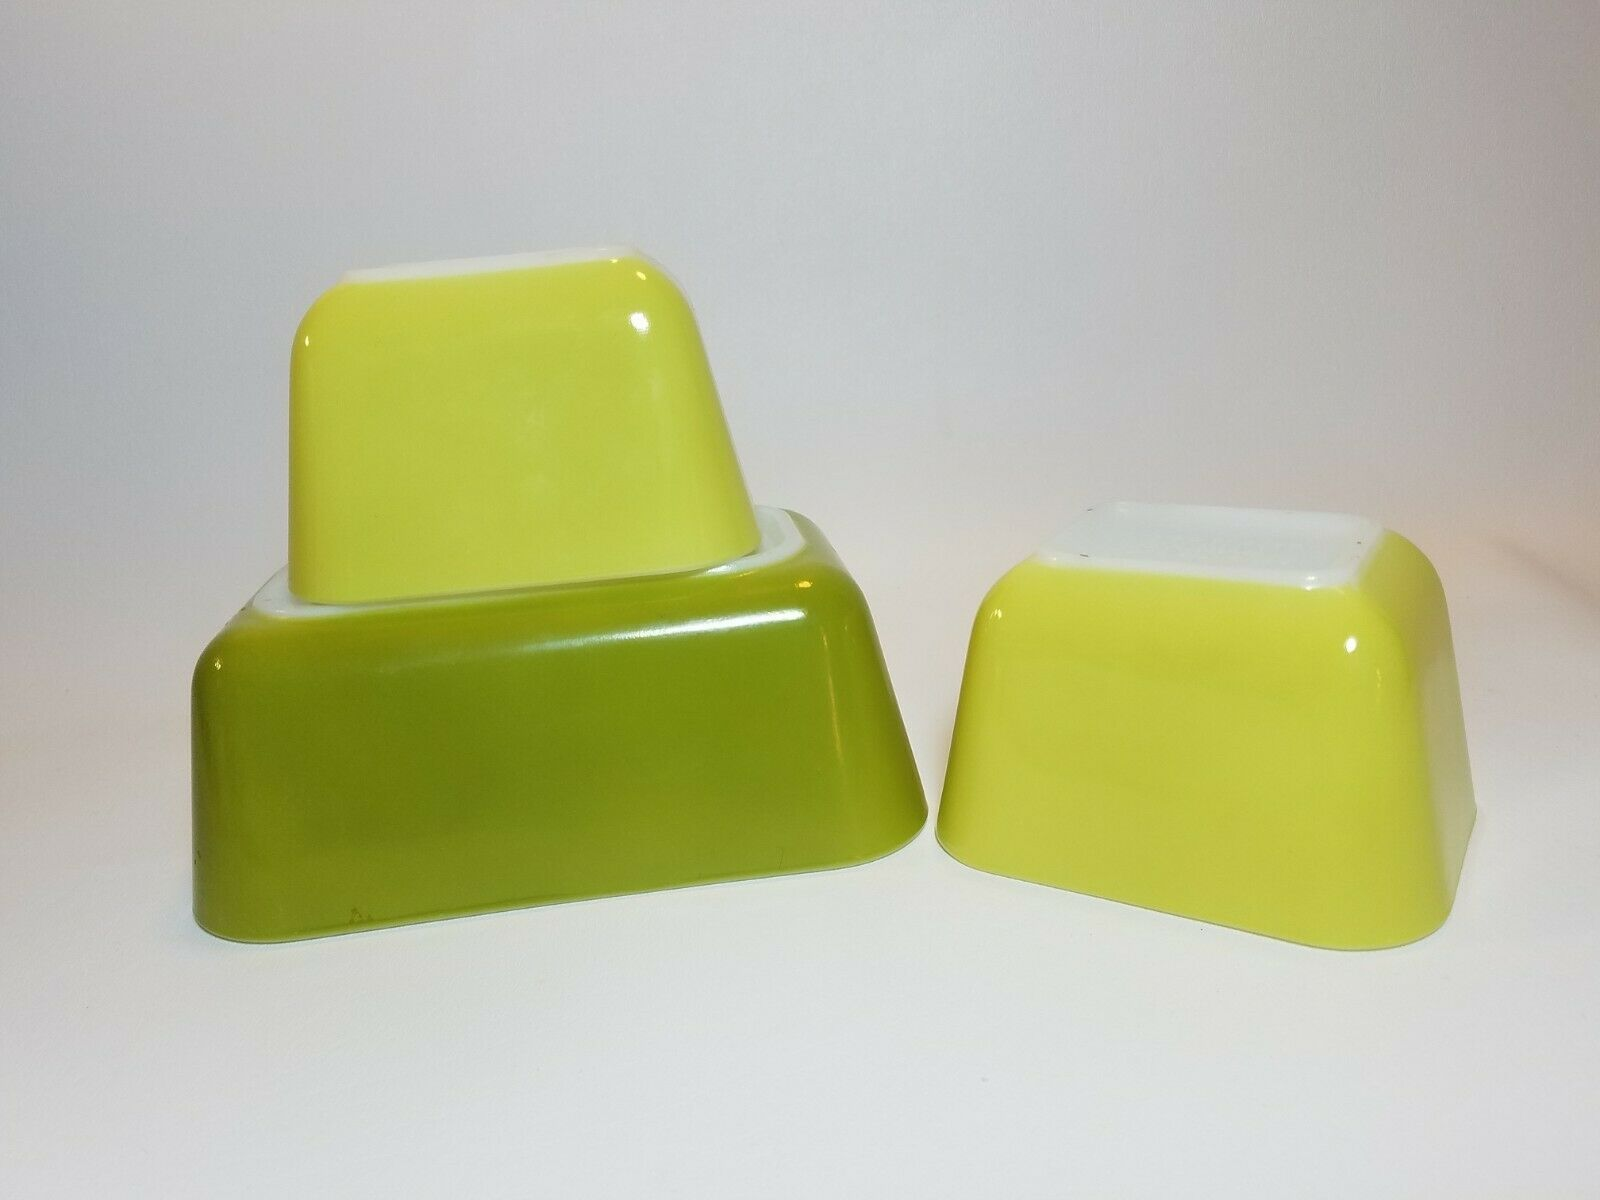 Vintage Pyrex Verde Green and Yellow 501 & 502 Refrigerator Dishes No Lids image 2